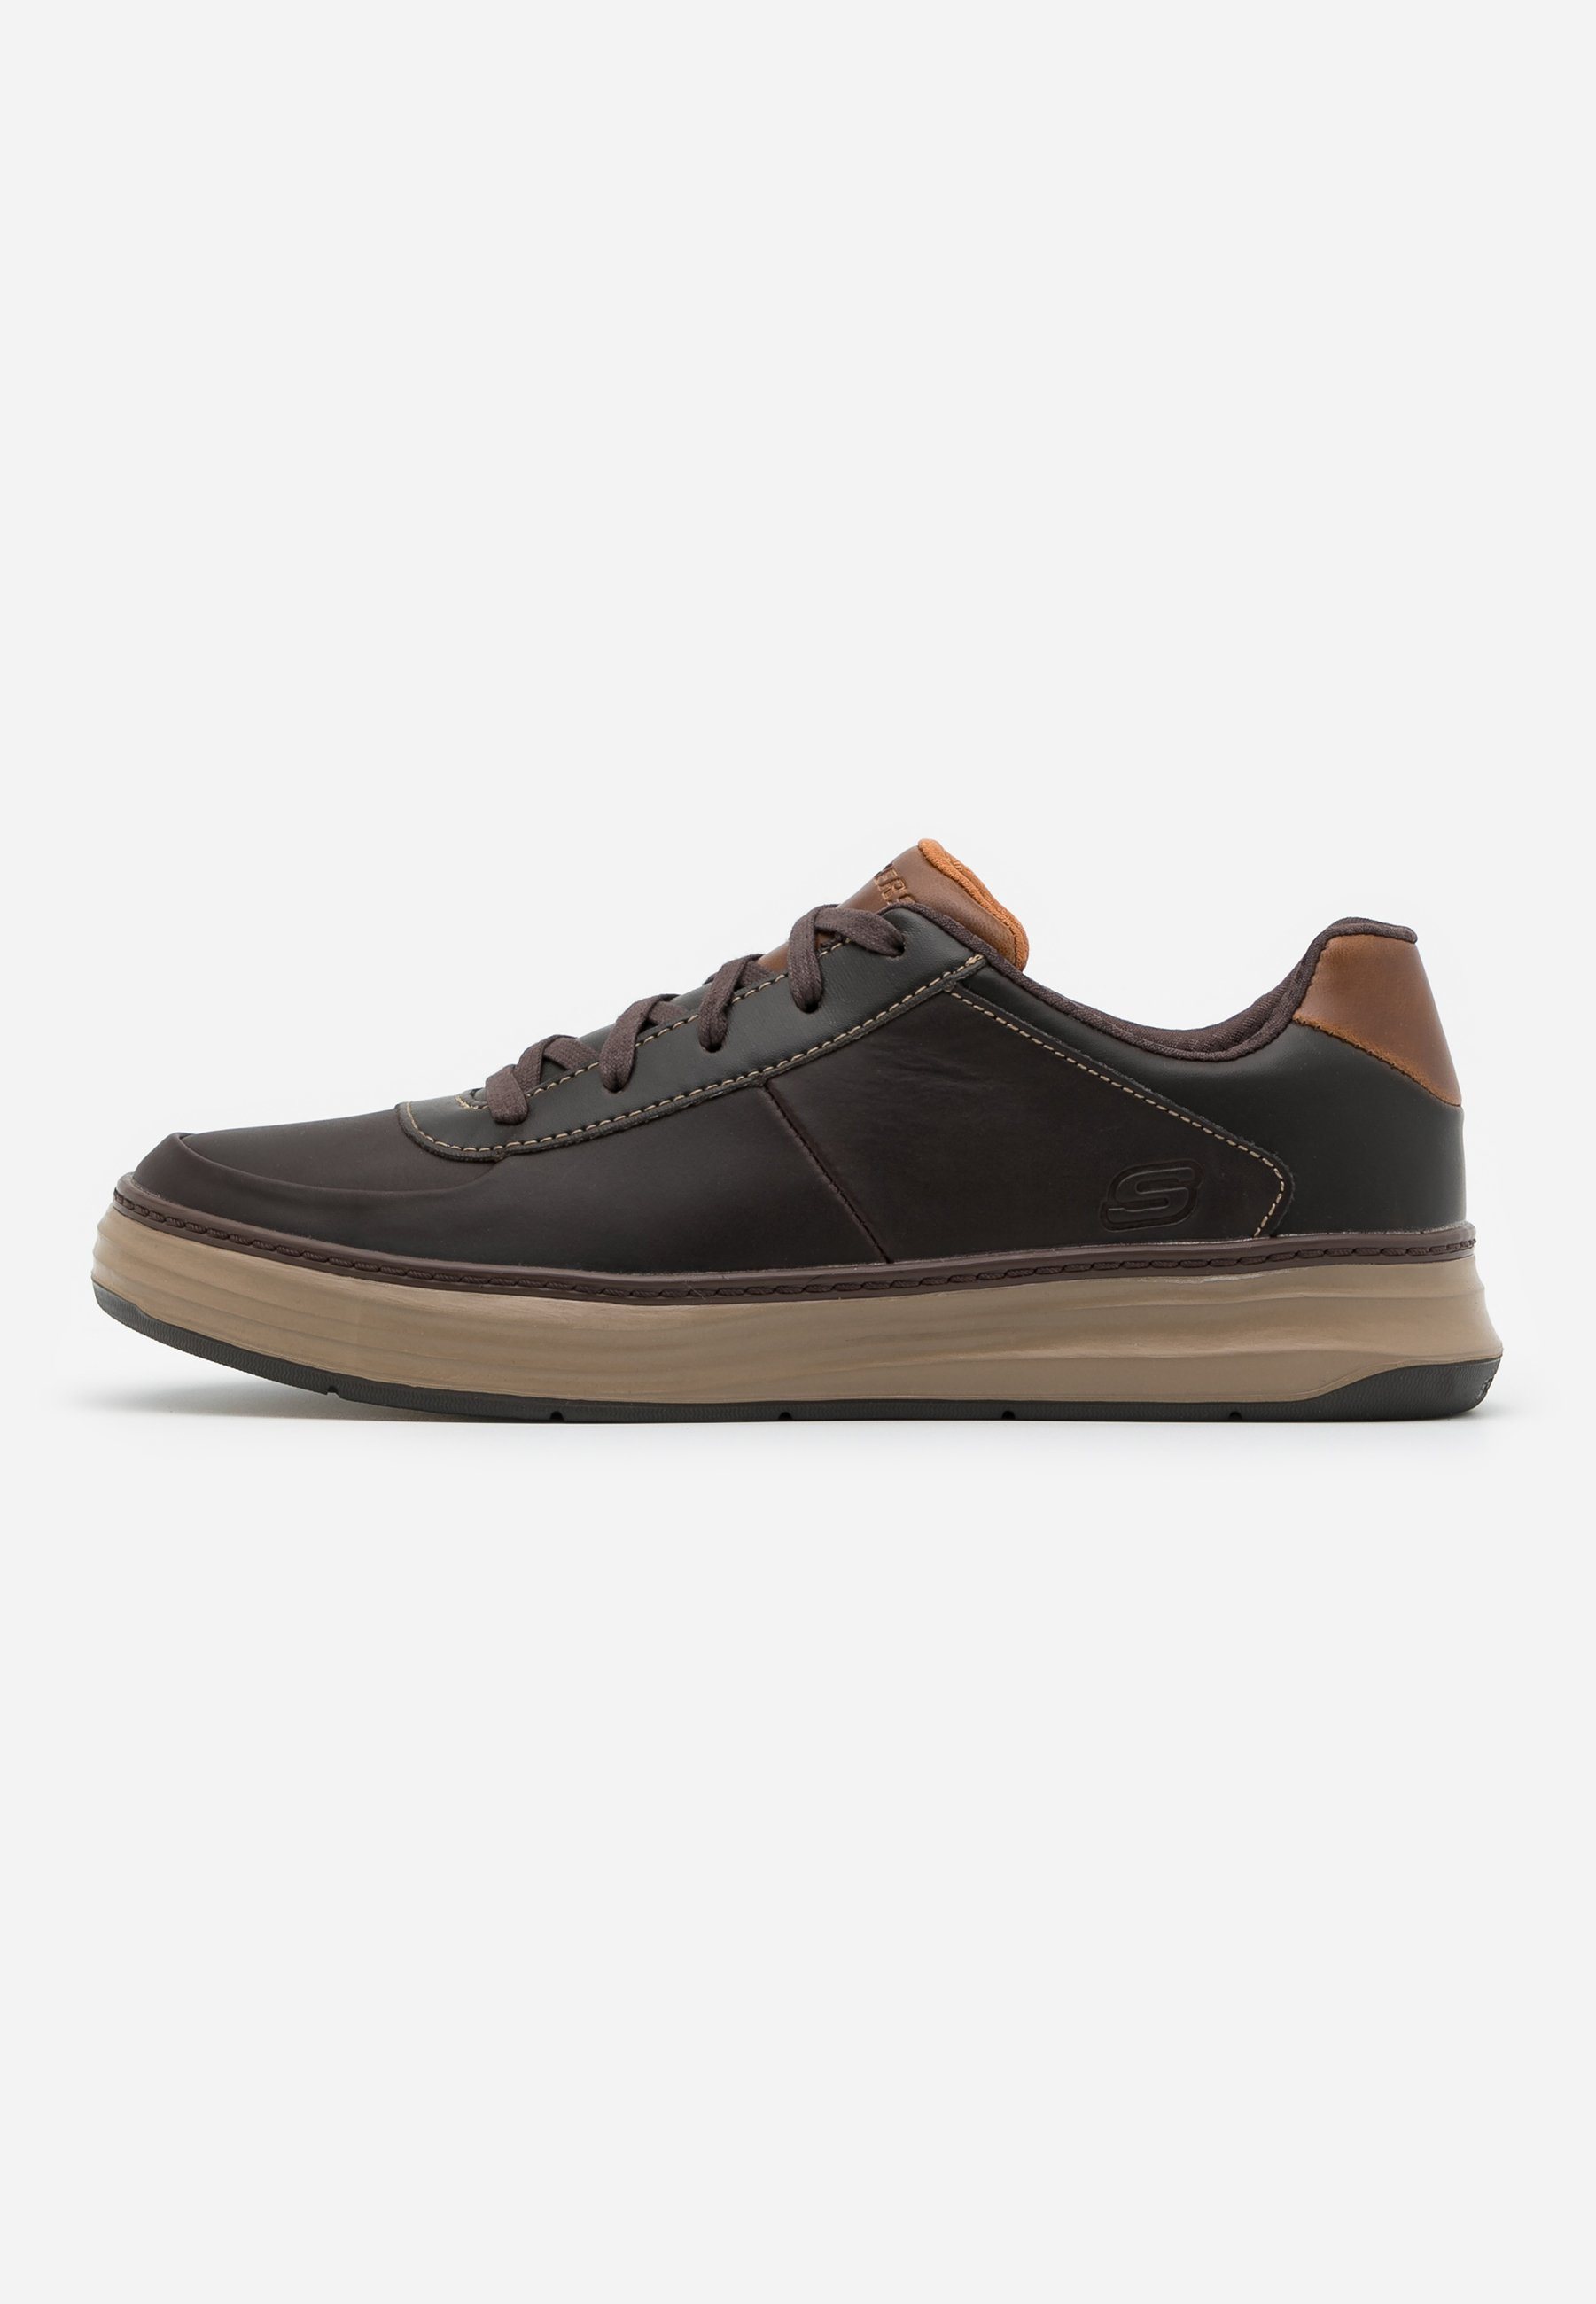 Mens Skechers Moreno Progue Leather